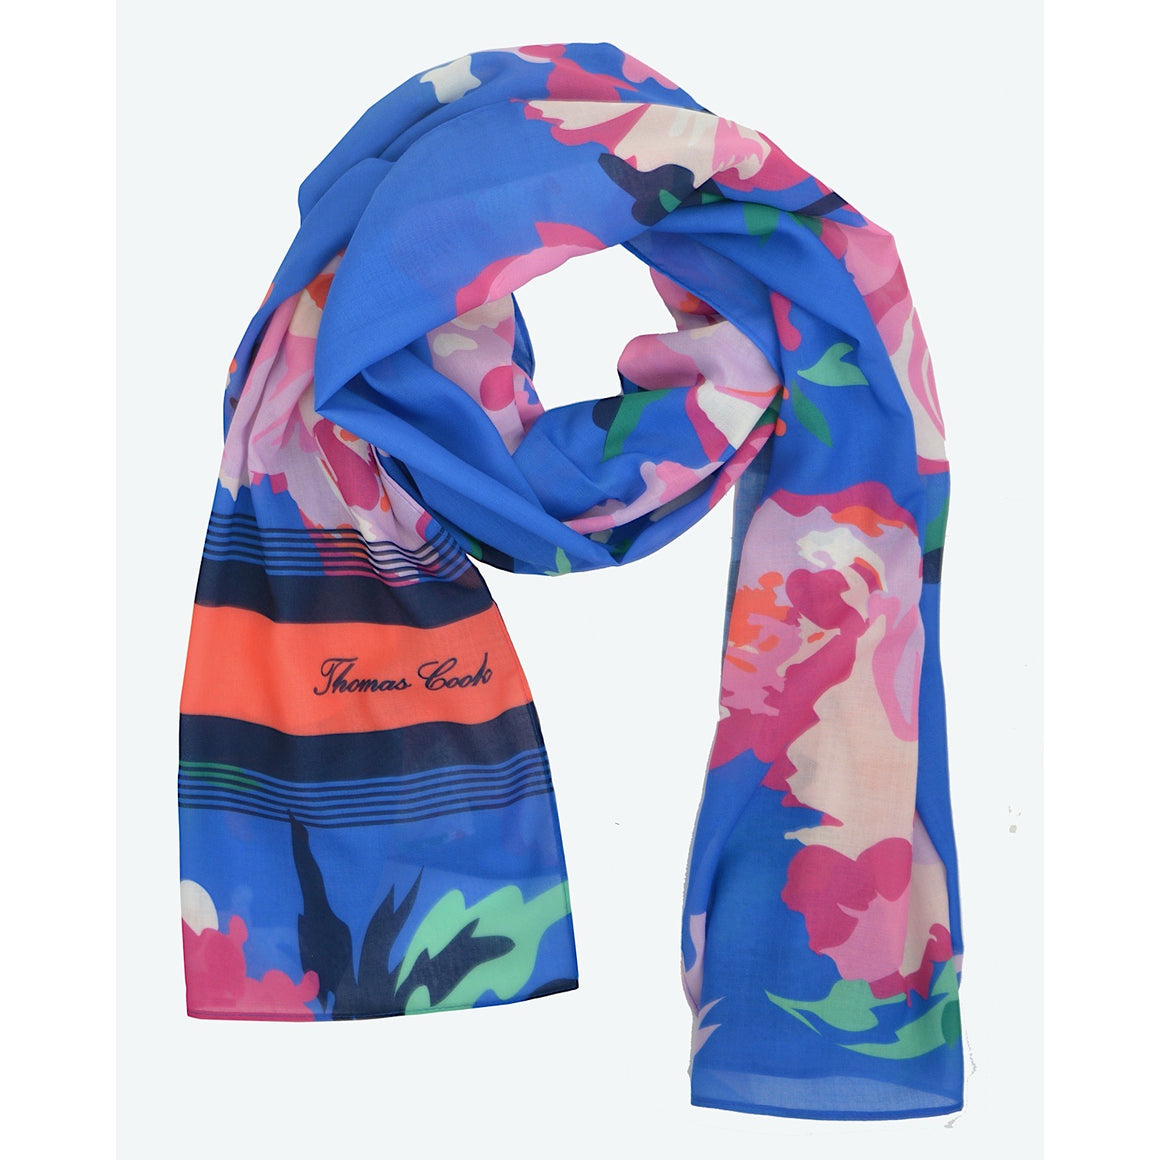 Thomas Cook Womens Everyday TC Print Scarf Floral